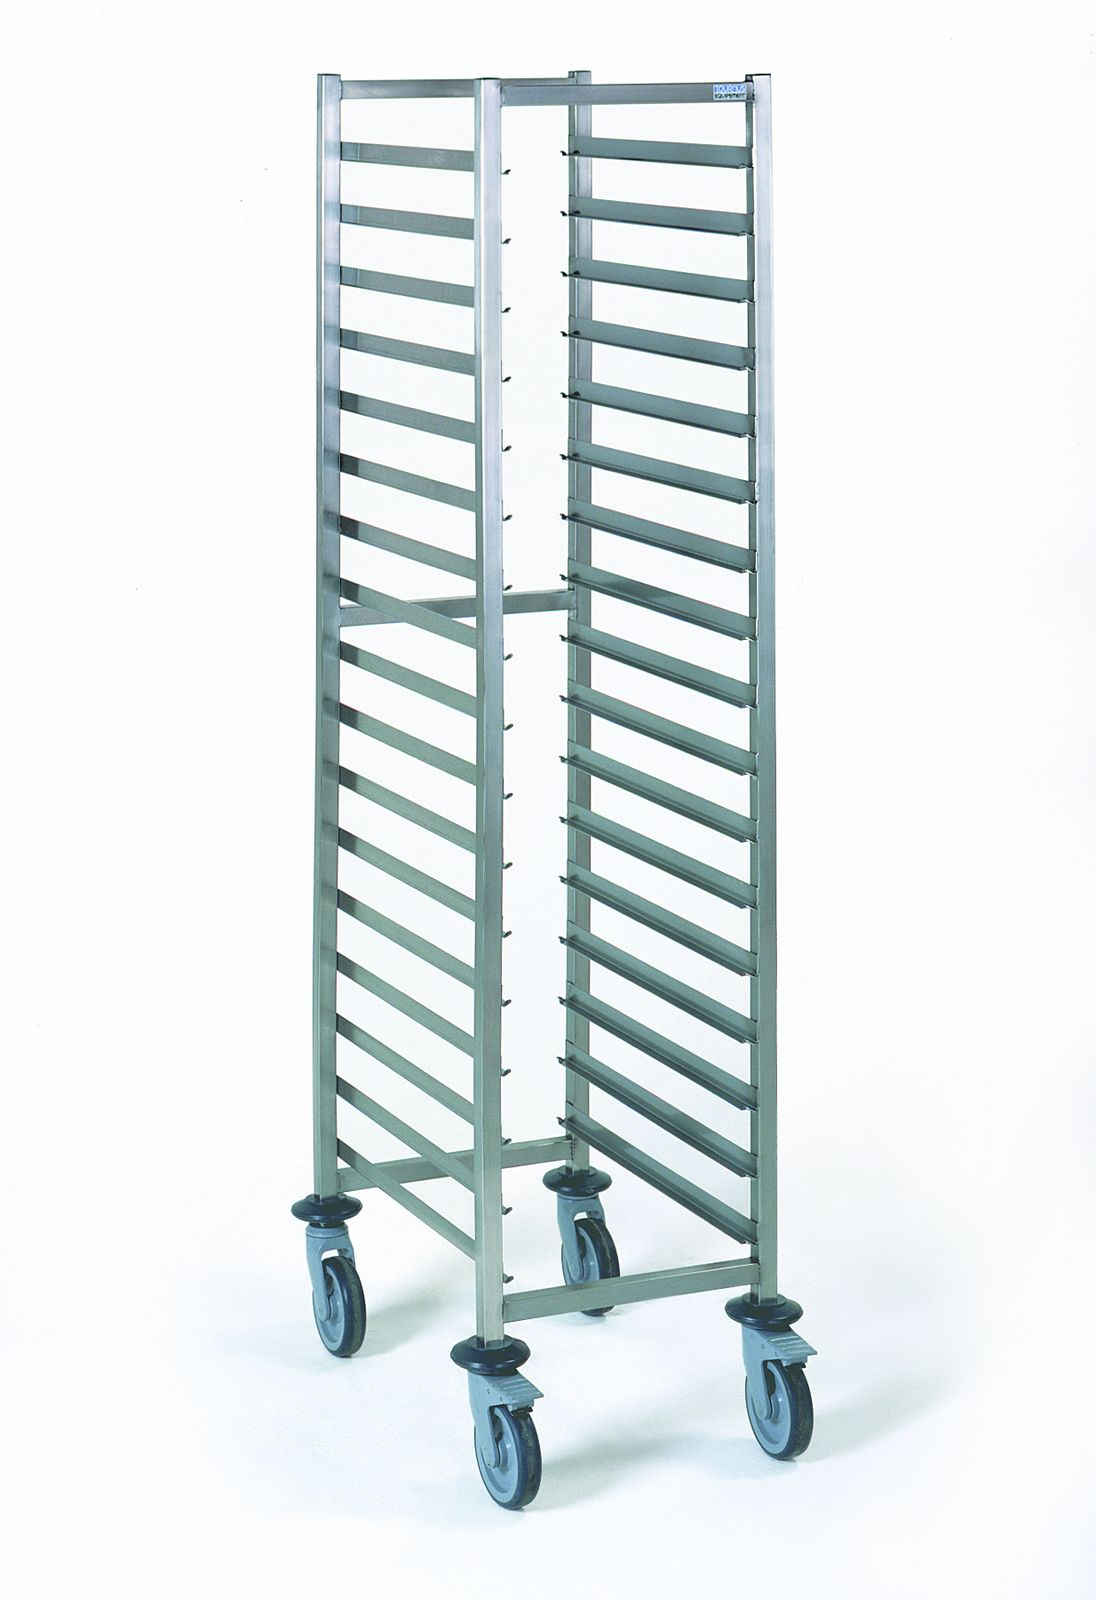 Gastronorm Racking Trolley GN 1/1 x 15 levels stainless steel